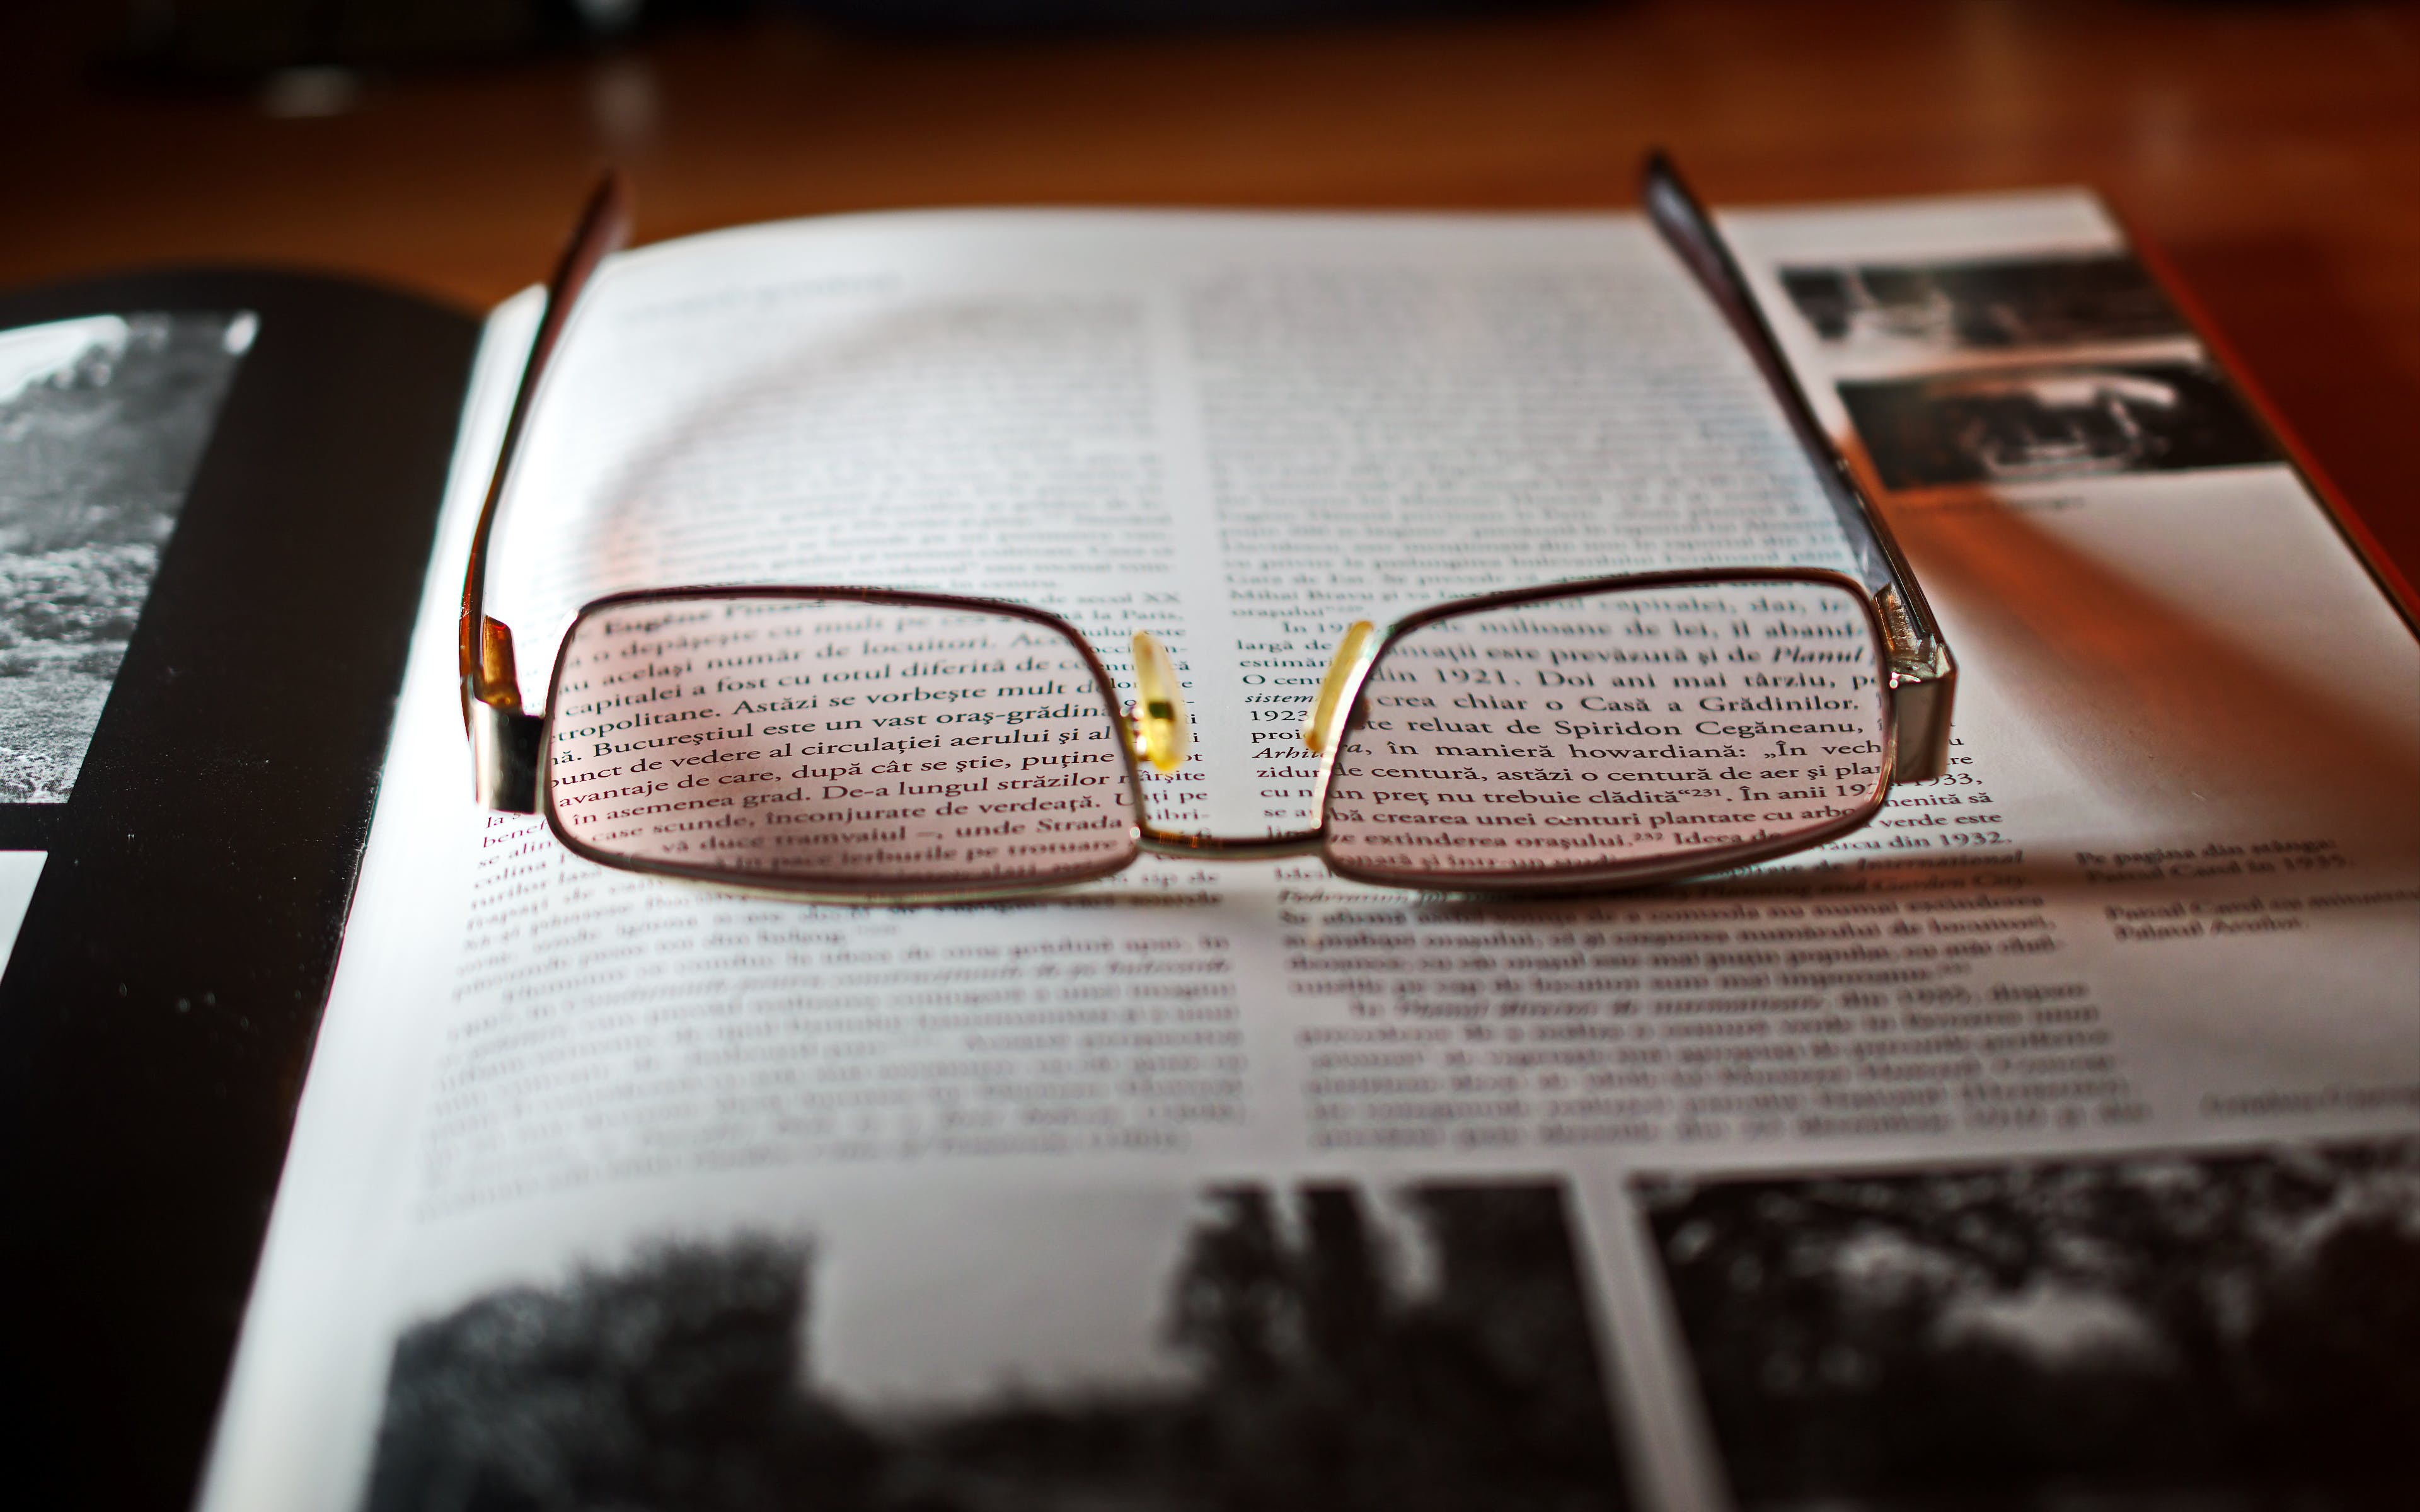 Eyeglasses With Gold-colored Frame on Opened Book